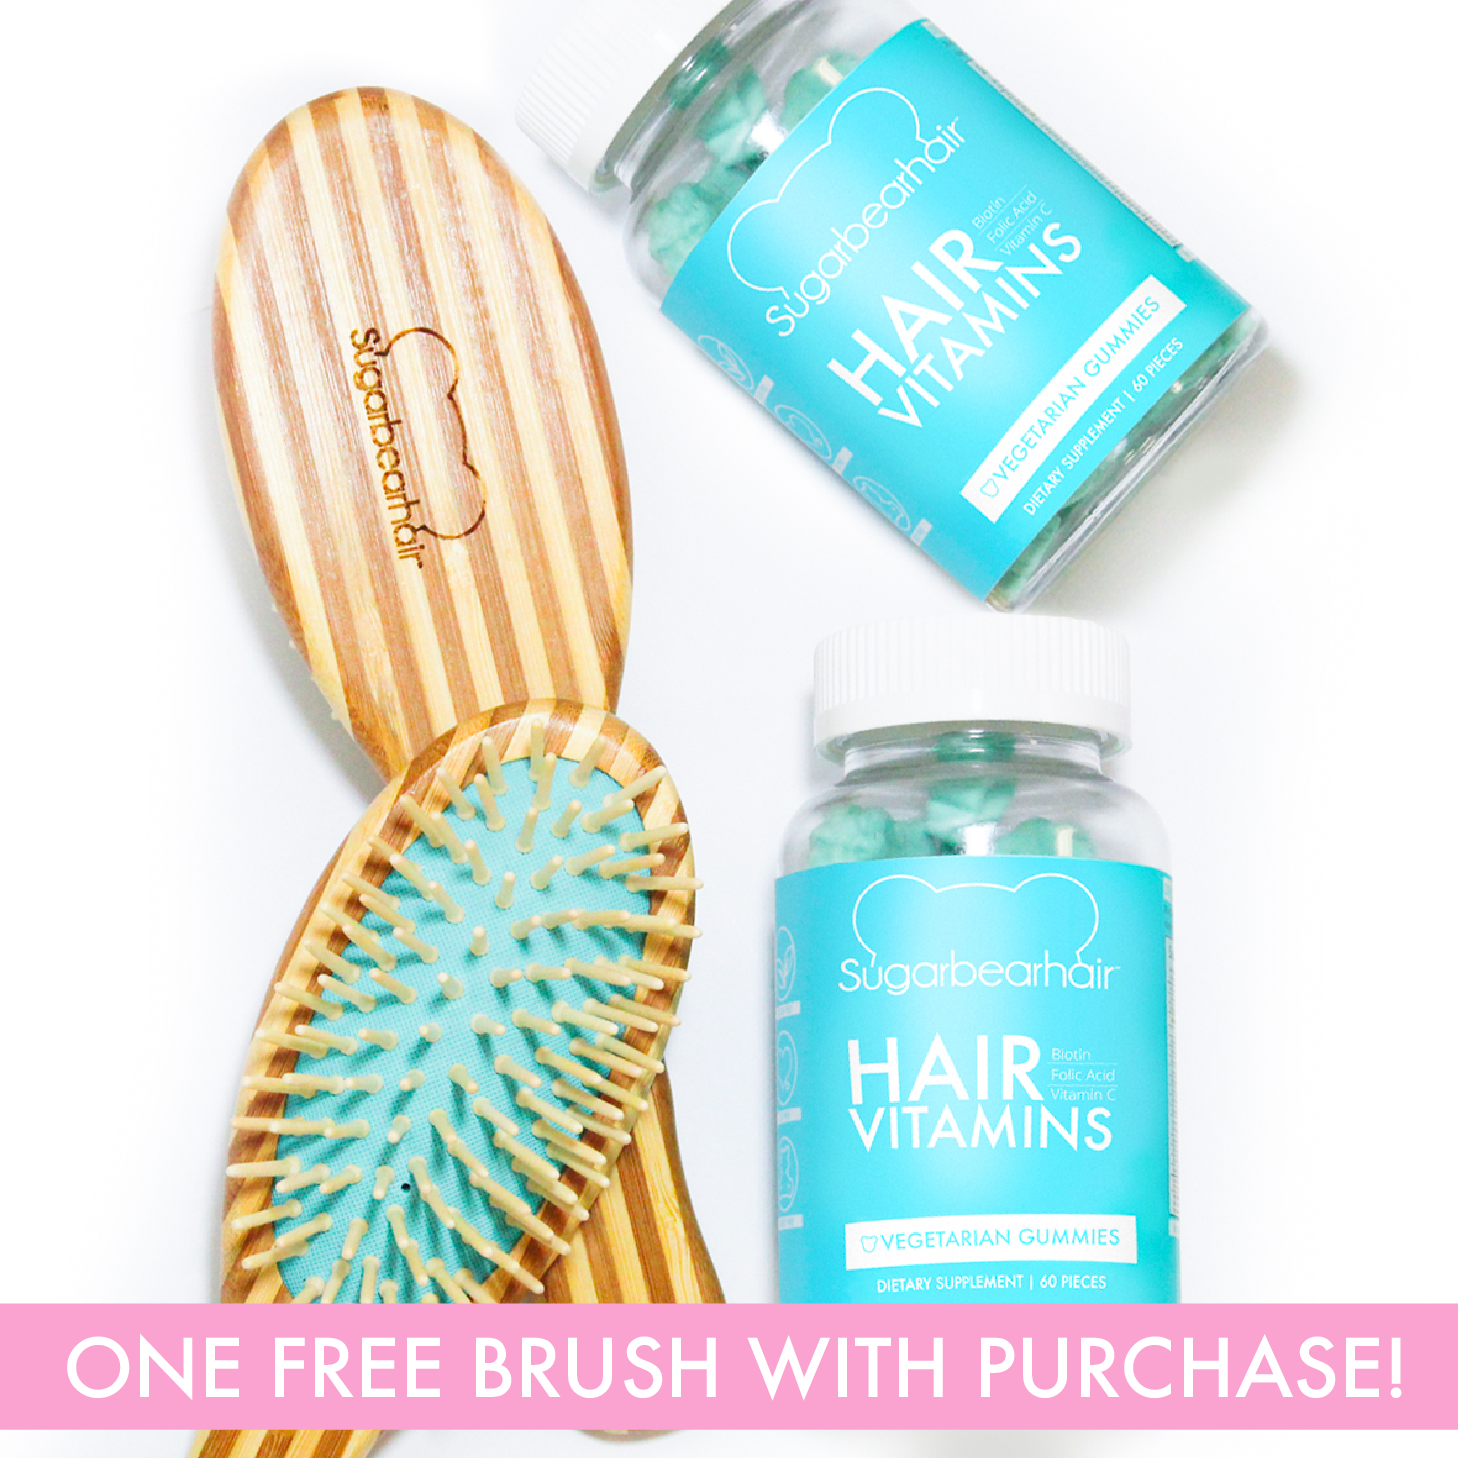 2d4e80abb8166 This website exclusive 6 month gift pack saves you almost  20 USD and comes  with one FREE Cruelty Free Natural Wood Hair Brush and one FREE Luxury  Cosmetic ...